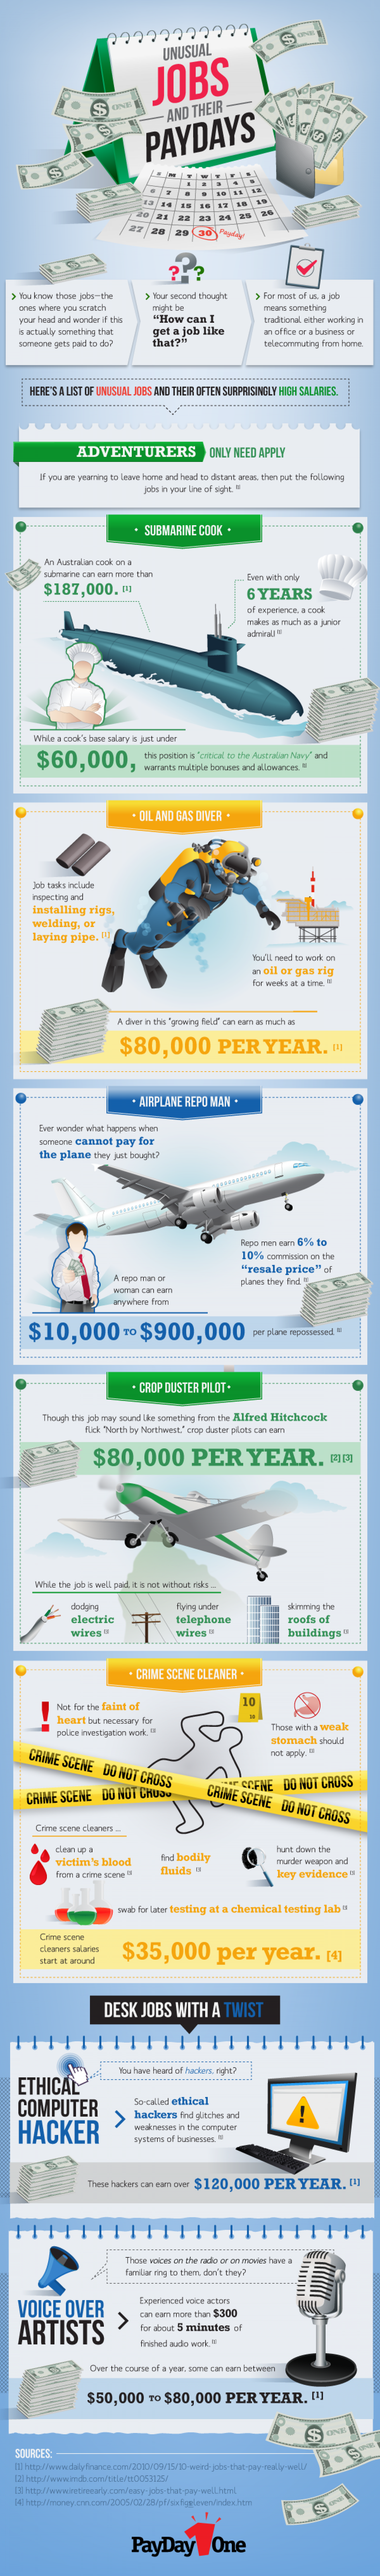 Unusual Jobs and their Paydays  Infographic